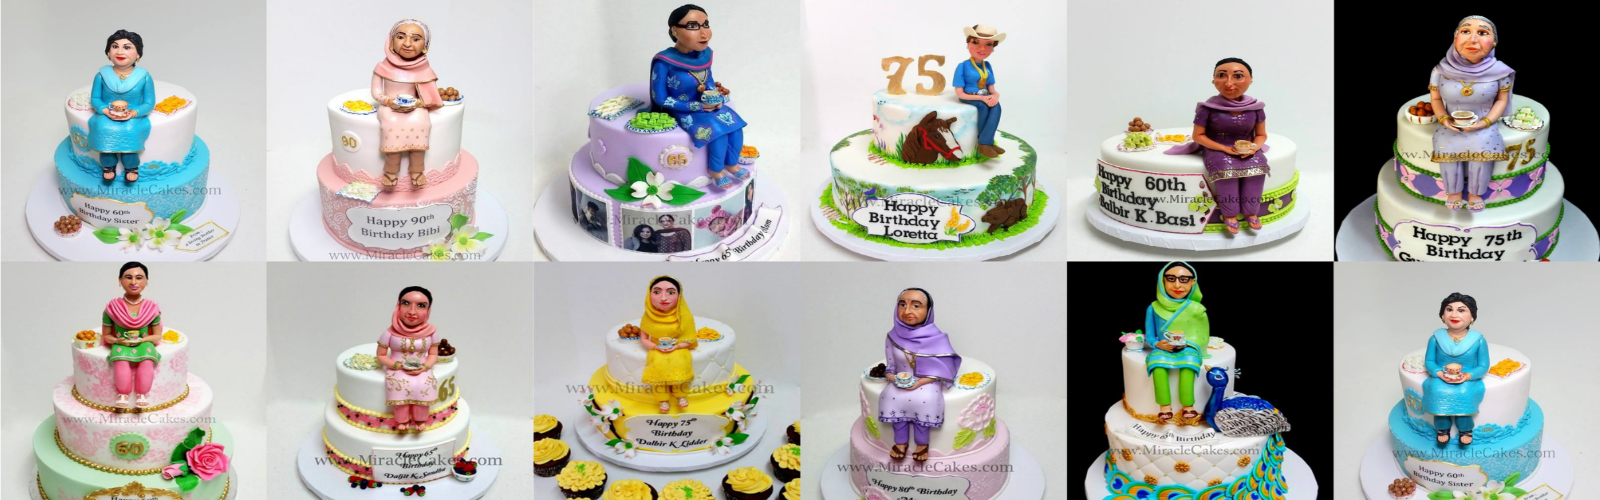 Fine Miracle Cakes Custom Cakes To Serve Surrey Langley Vancouver Bc Funny Birthday Cards Online Inifodamsfinfo